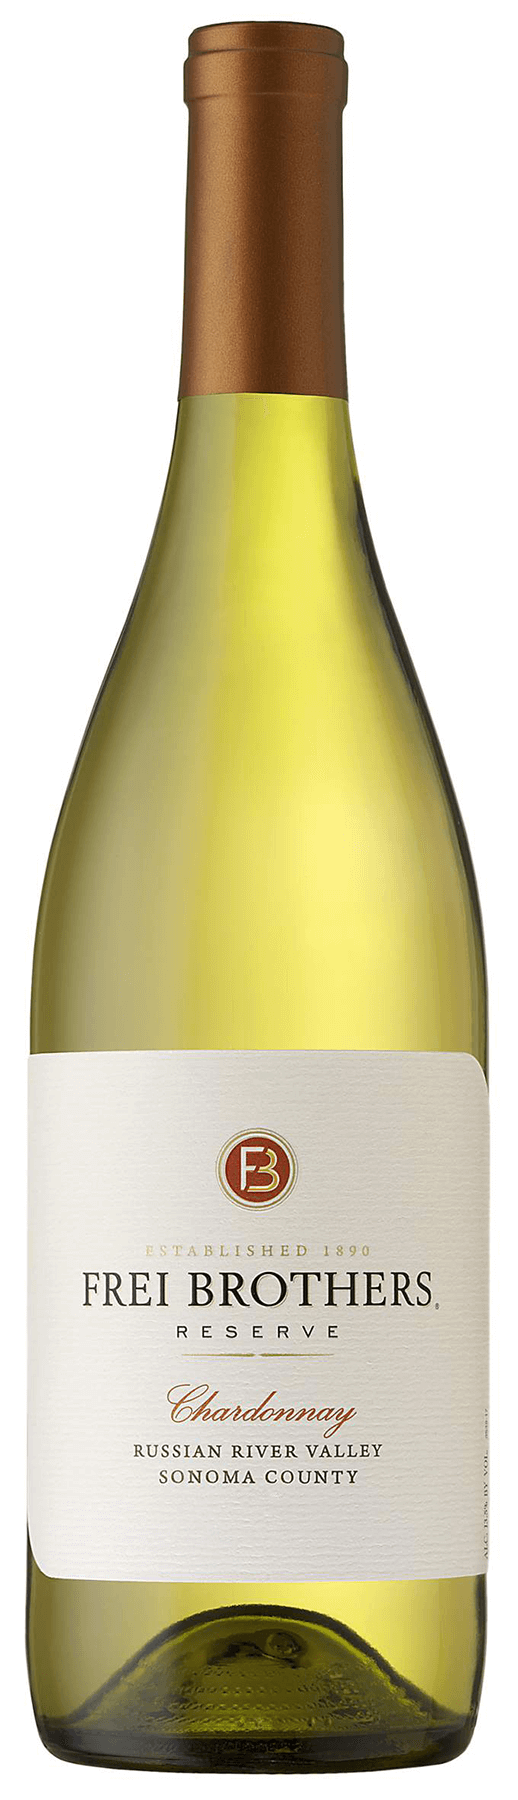 Frei Brothers Chardonnay Reserve 2016